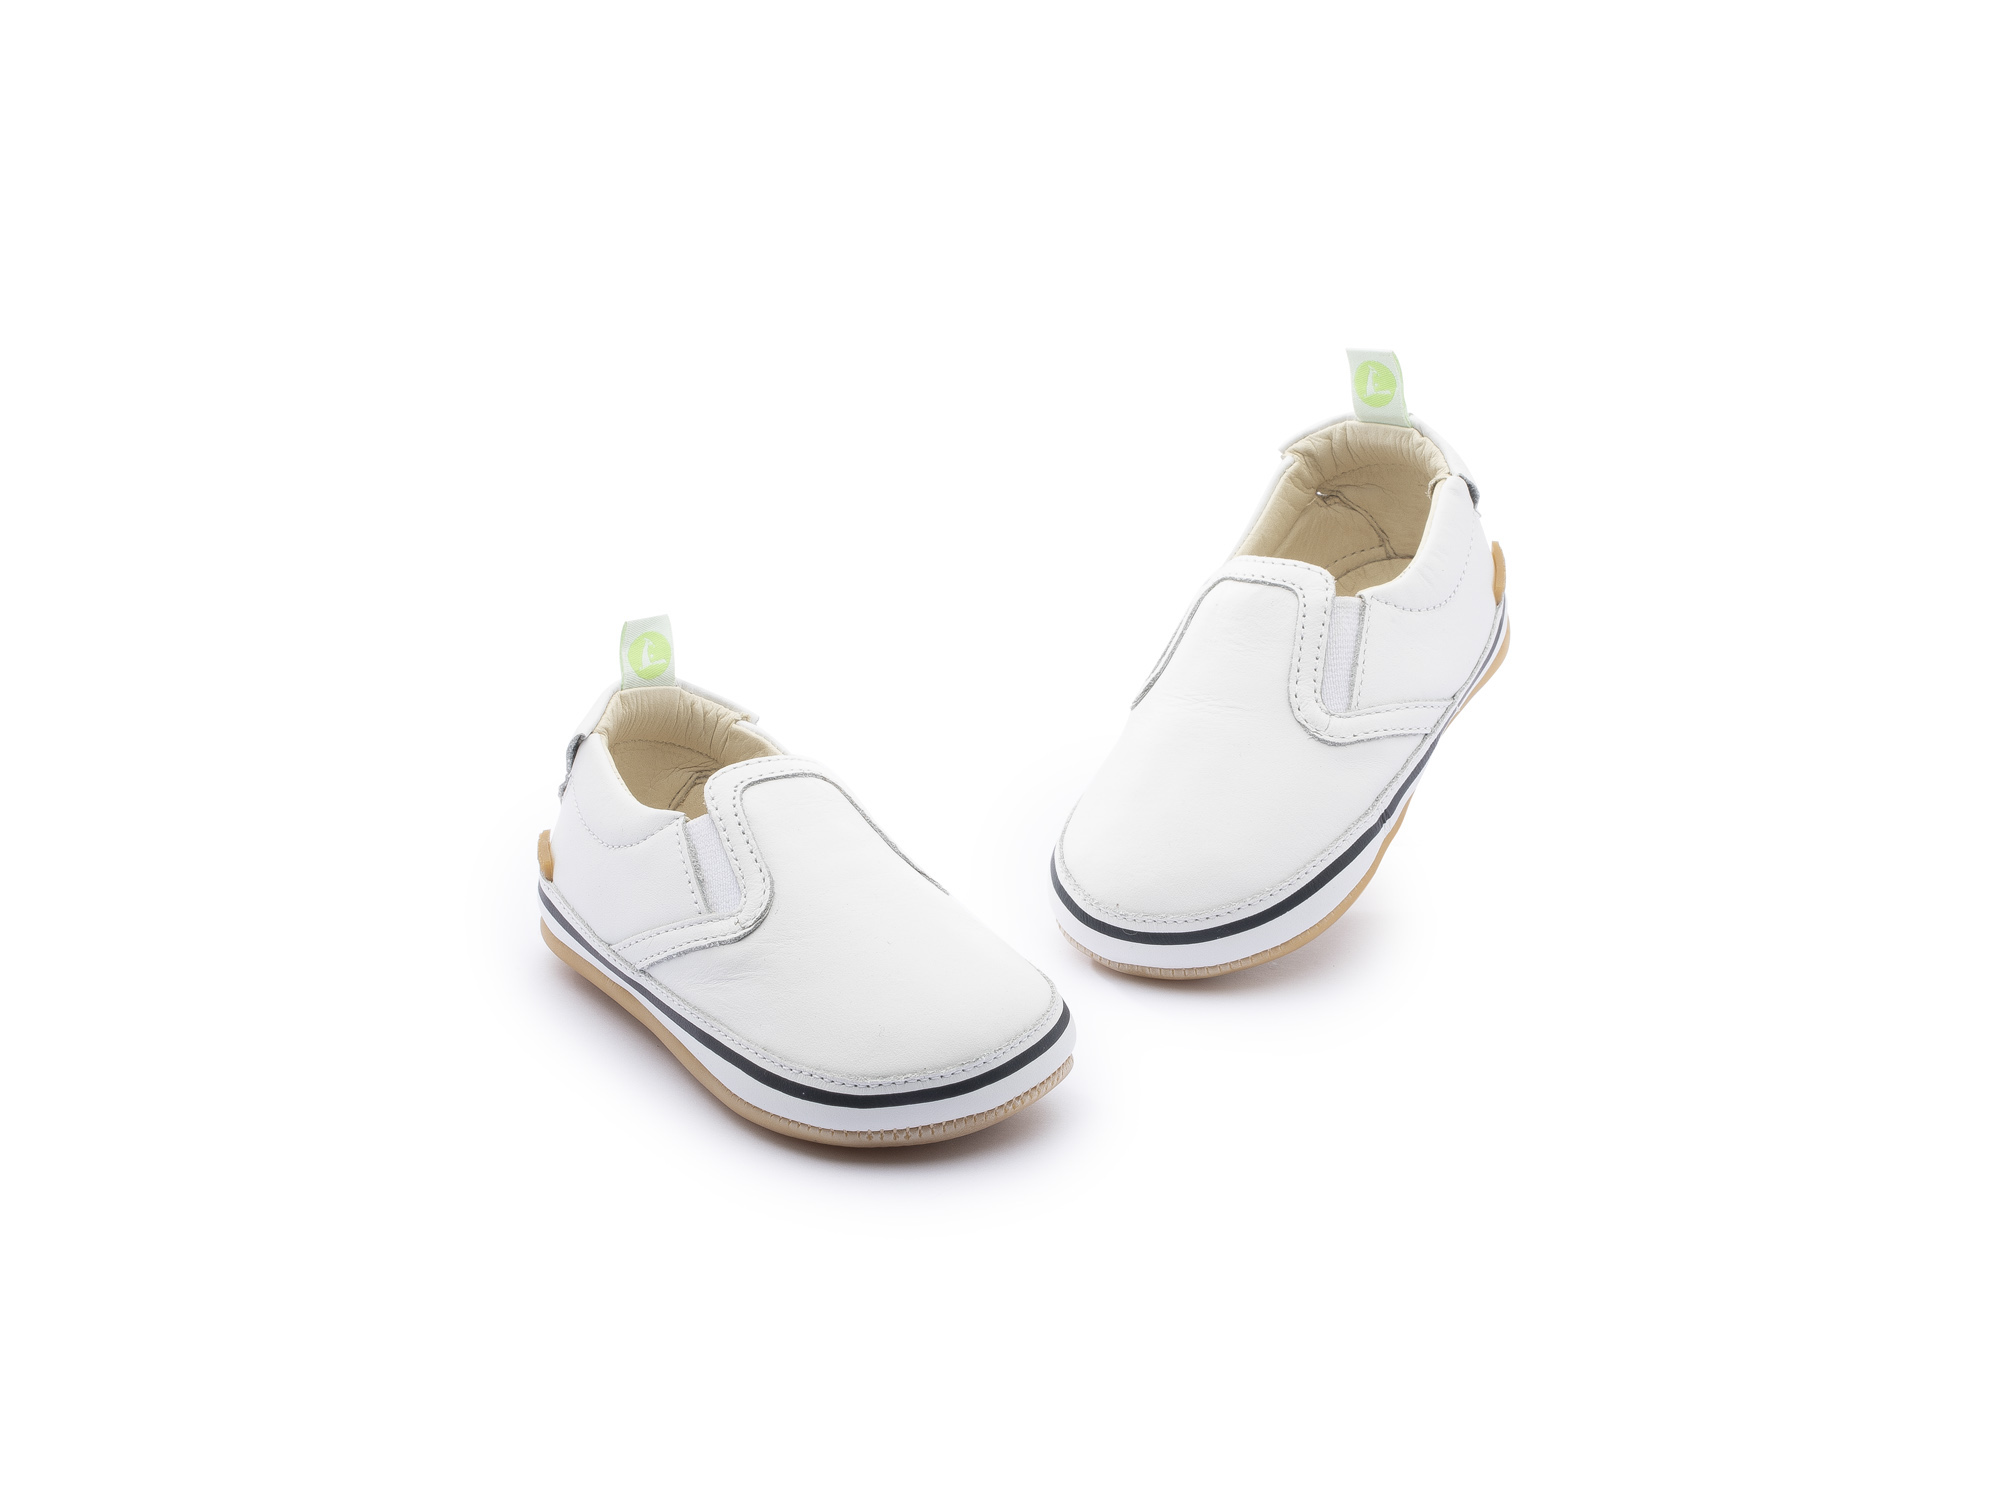 Sneaker Casual Woody White  Baby 0 à 2 anos - 3